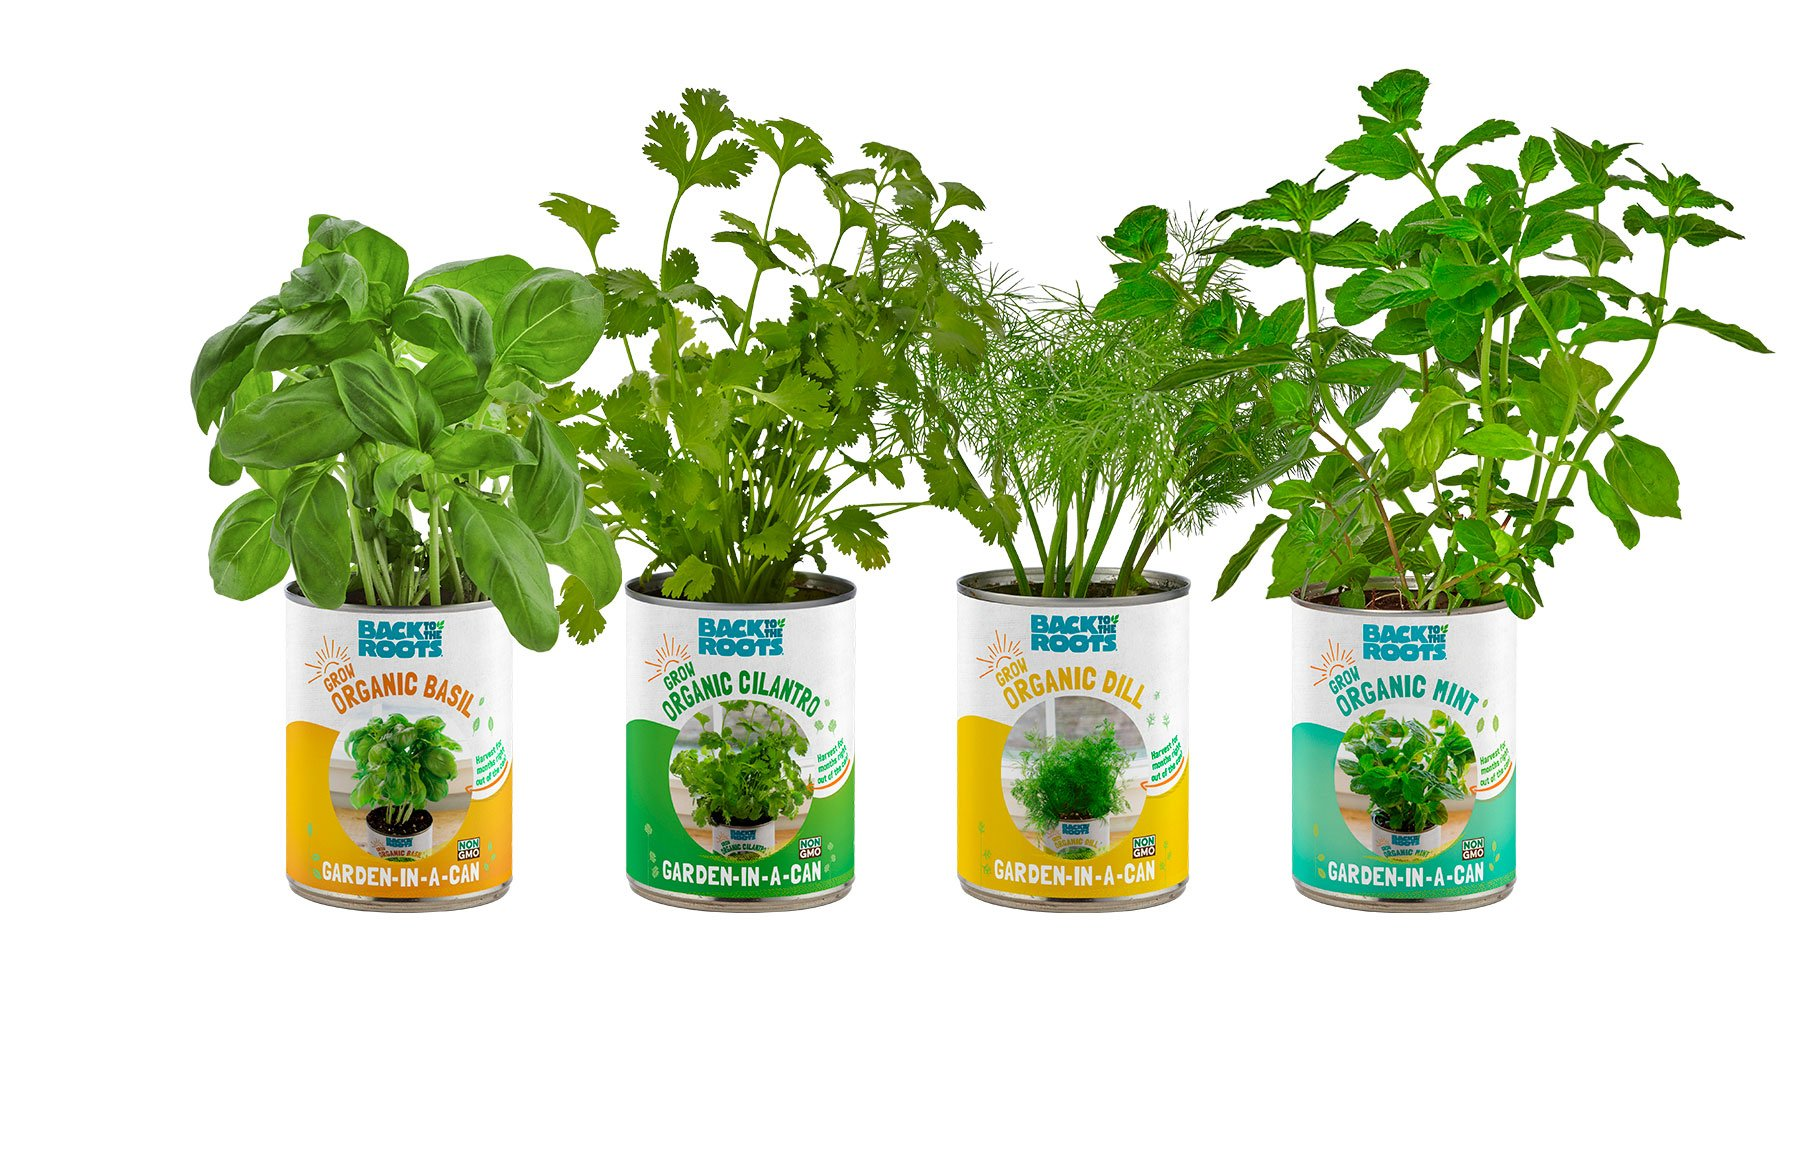 Back to the Roots Garden-in-a-Can Grow Organic Herbs Variety Pack, Basil/Cilantro/Dill/Mint, 4 Count